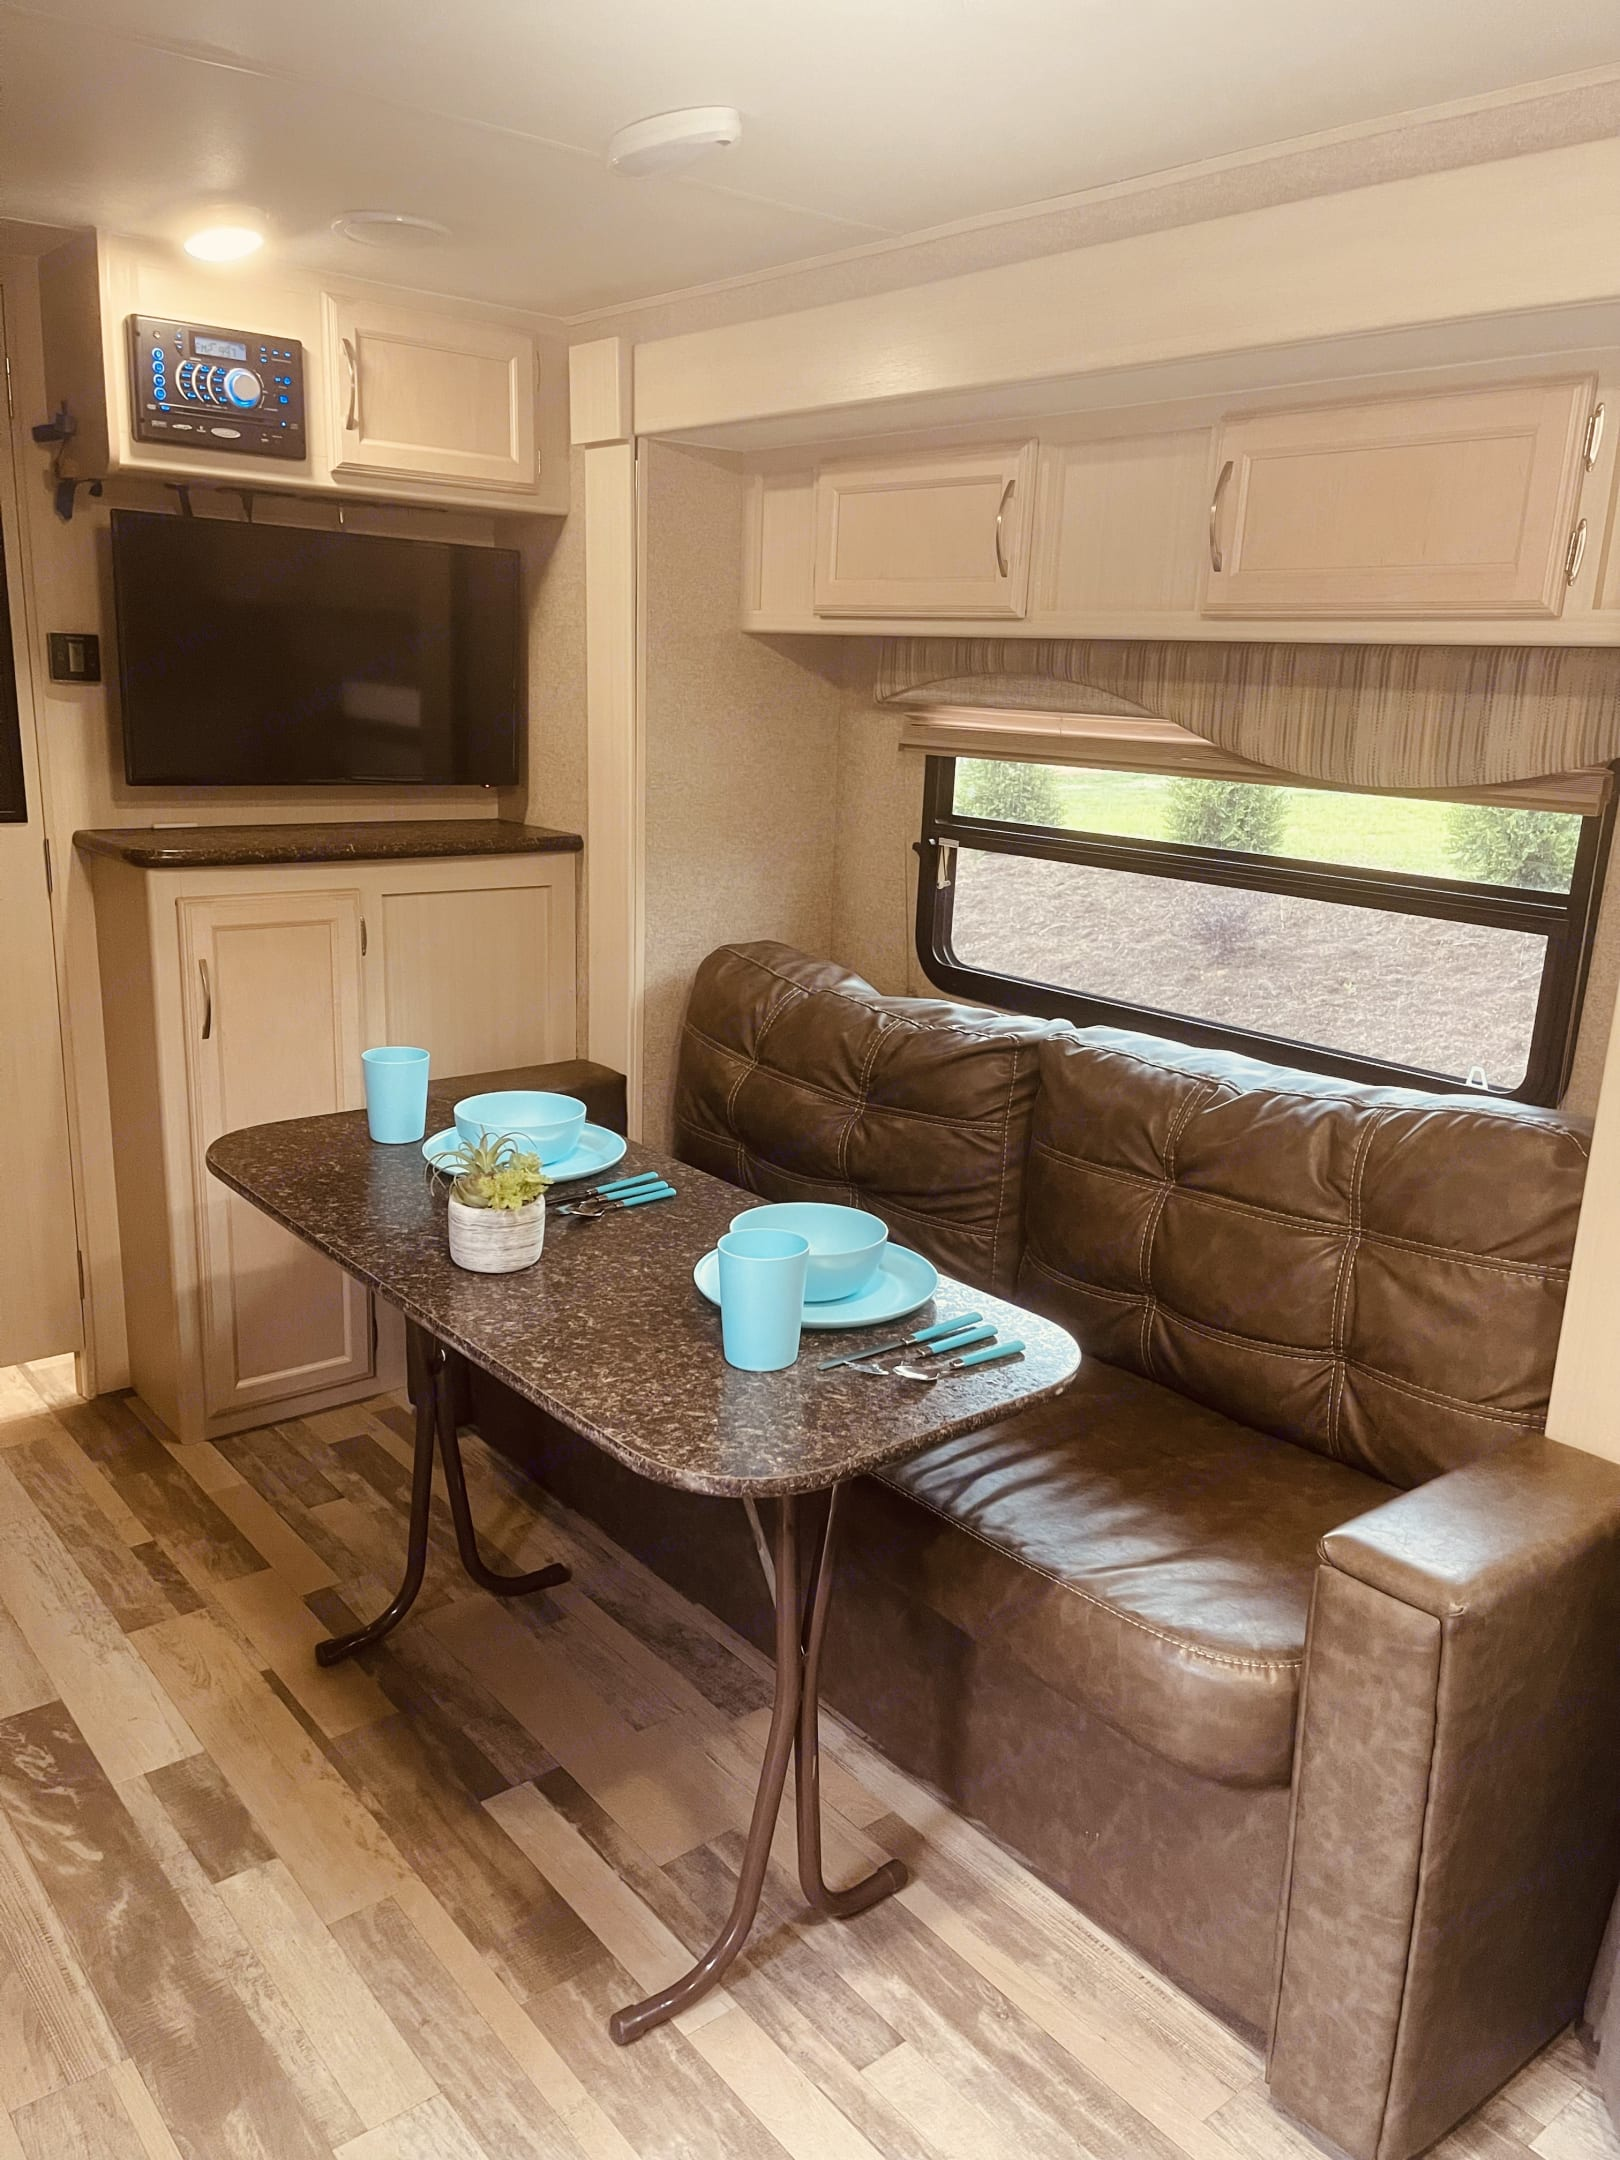 Just grab the dining table from behind the sofa and pop out the legs and you are ready to eat.. Winnebago Micro Minnie 2017